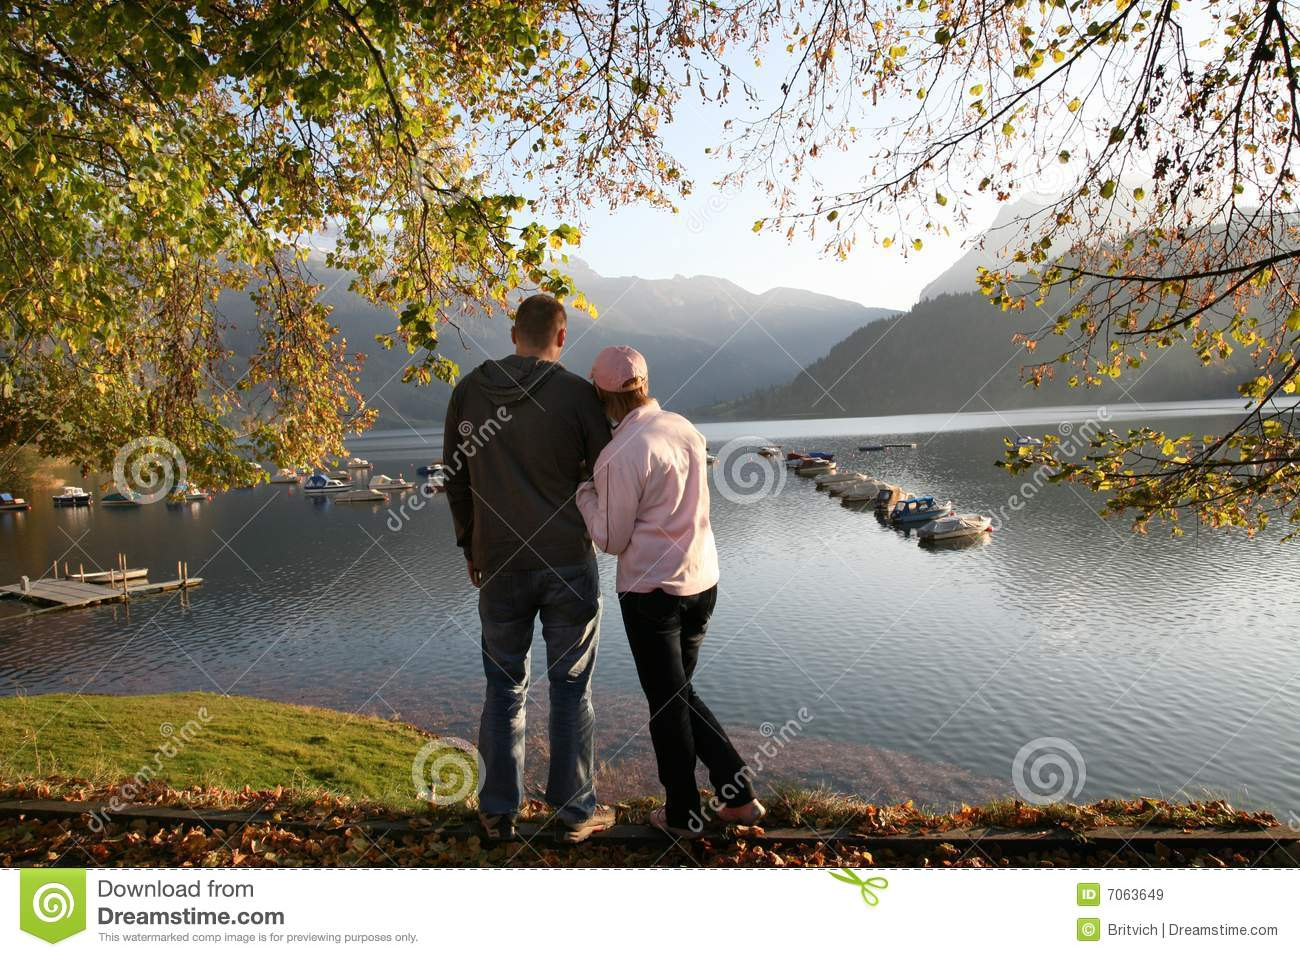 At the autumn lake together 2